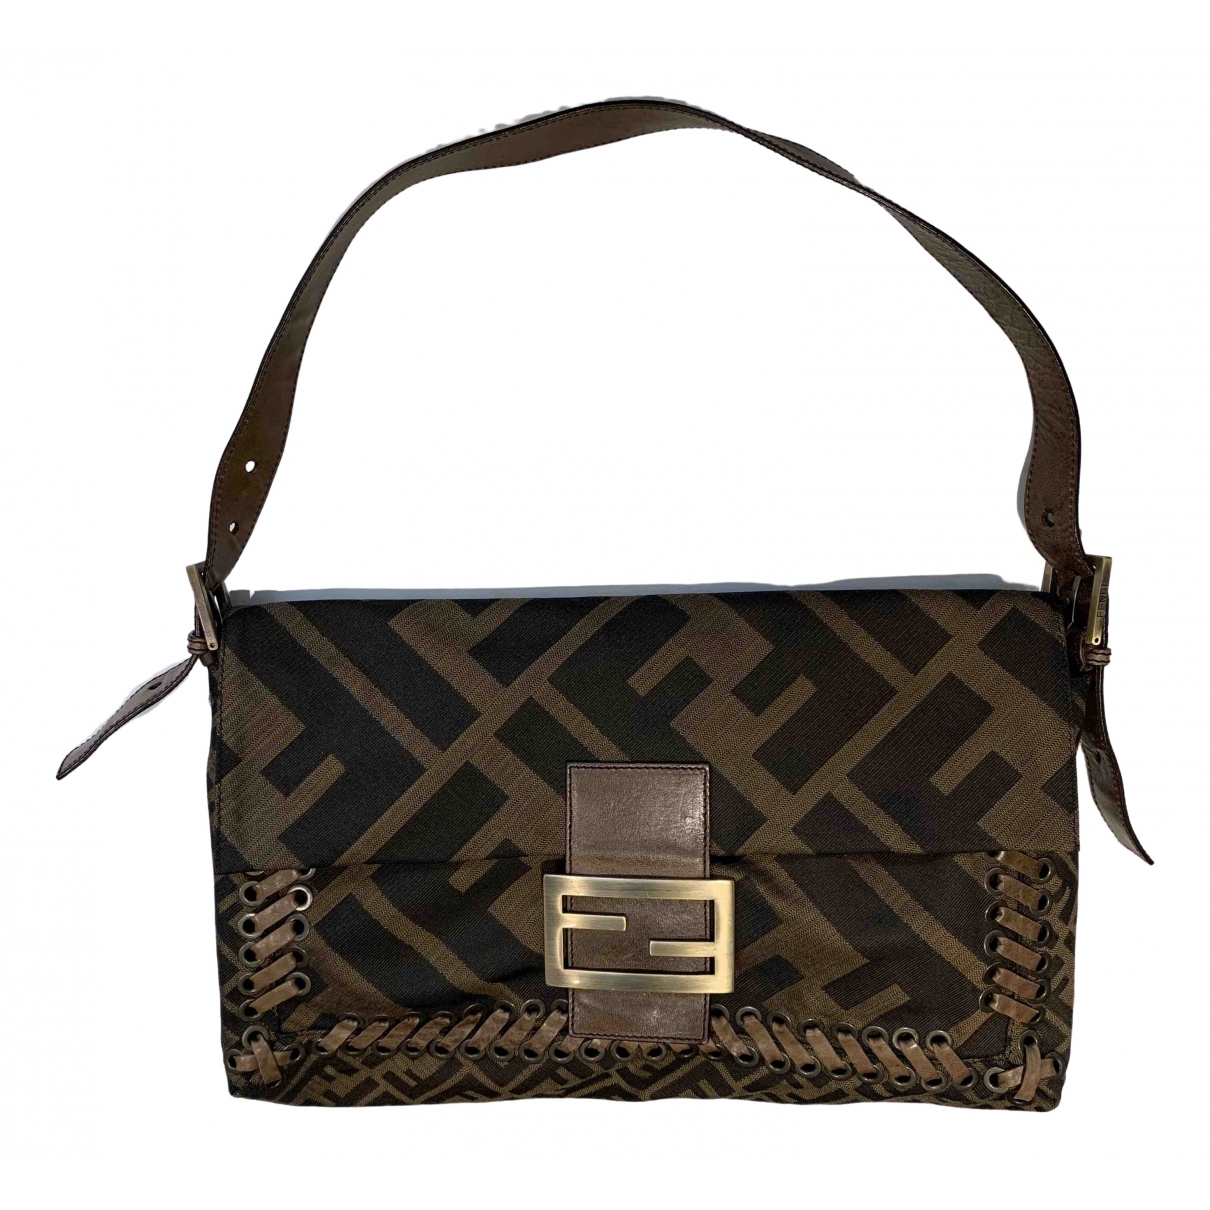 Fendi Baguette Brown Cloth handbag for Women \N